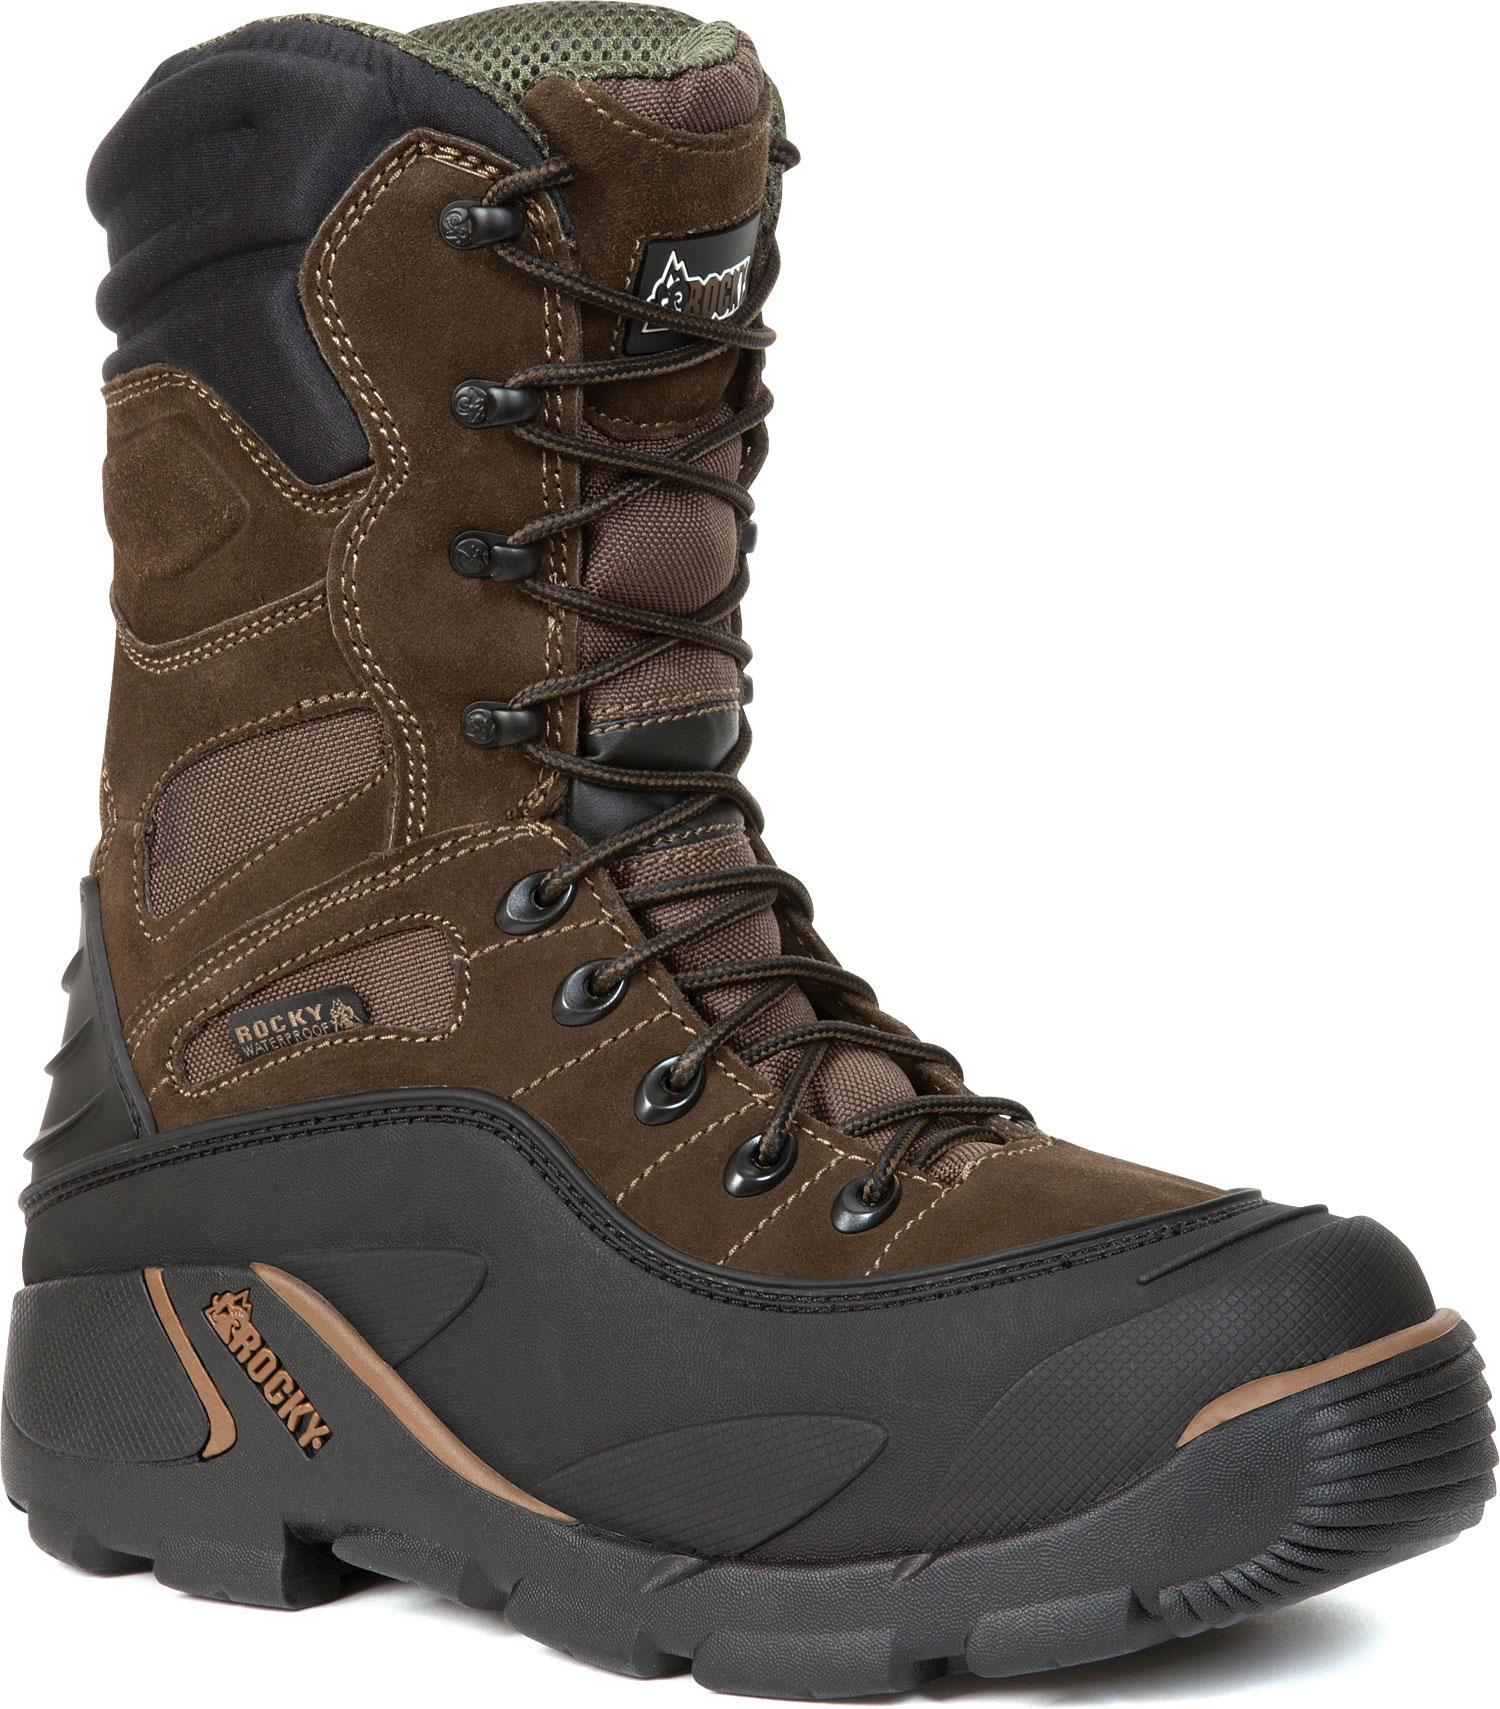 Blizzard Stalker PRO Men's Waterproof Insulated ROCKY Boot